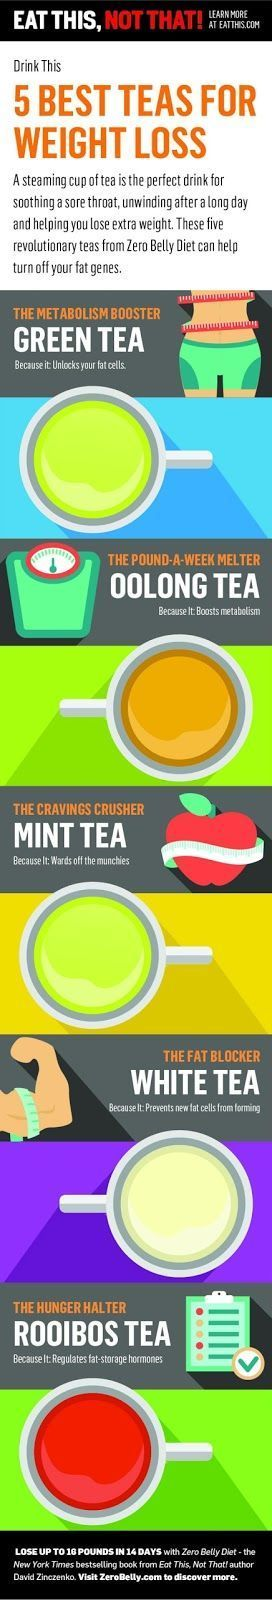 These 10 weight loss drinks are THE BEST! I'm so glad I found them! I've started drinking the second one and I'm ALREADY LOSING WEIGHT! This is such a great post! DEFINITELY pinning!